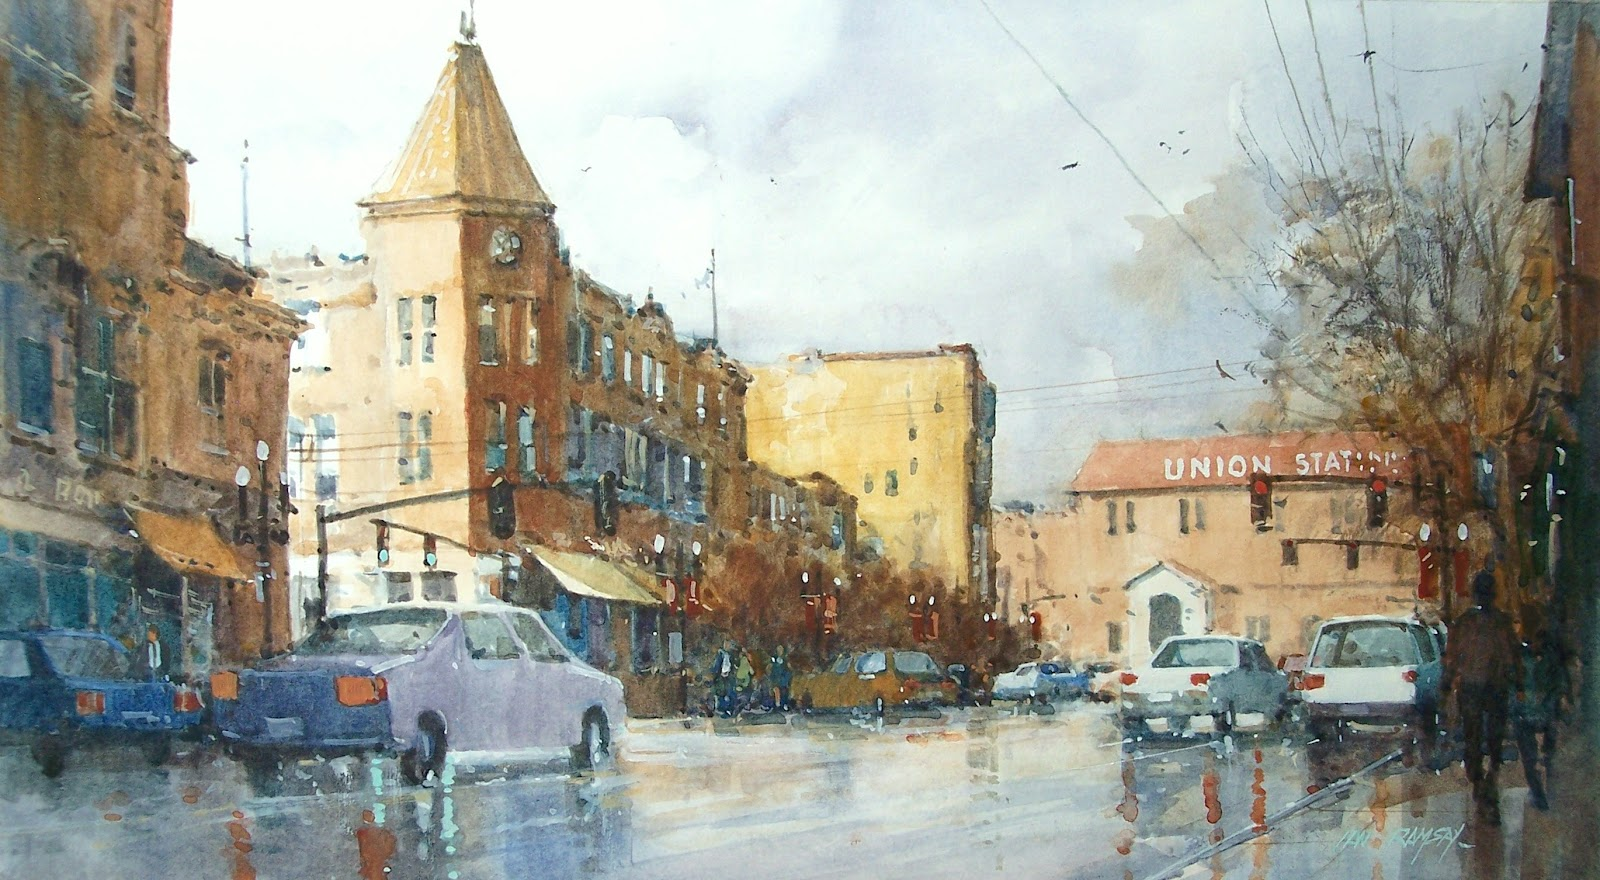 Ian Ramsay Watercolors As I Have Mentioned Before